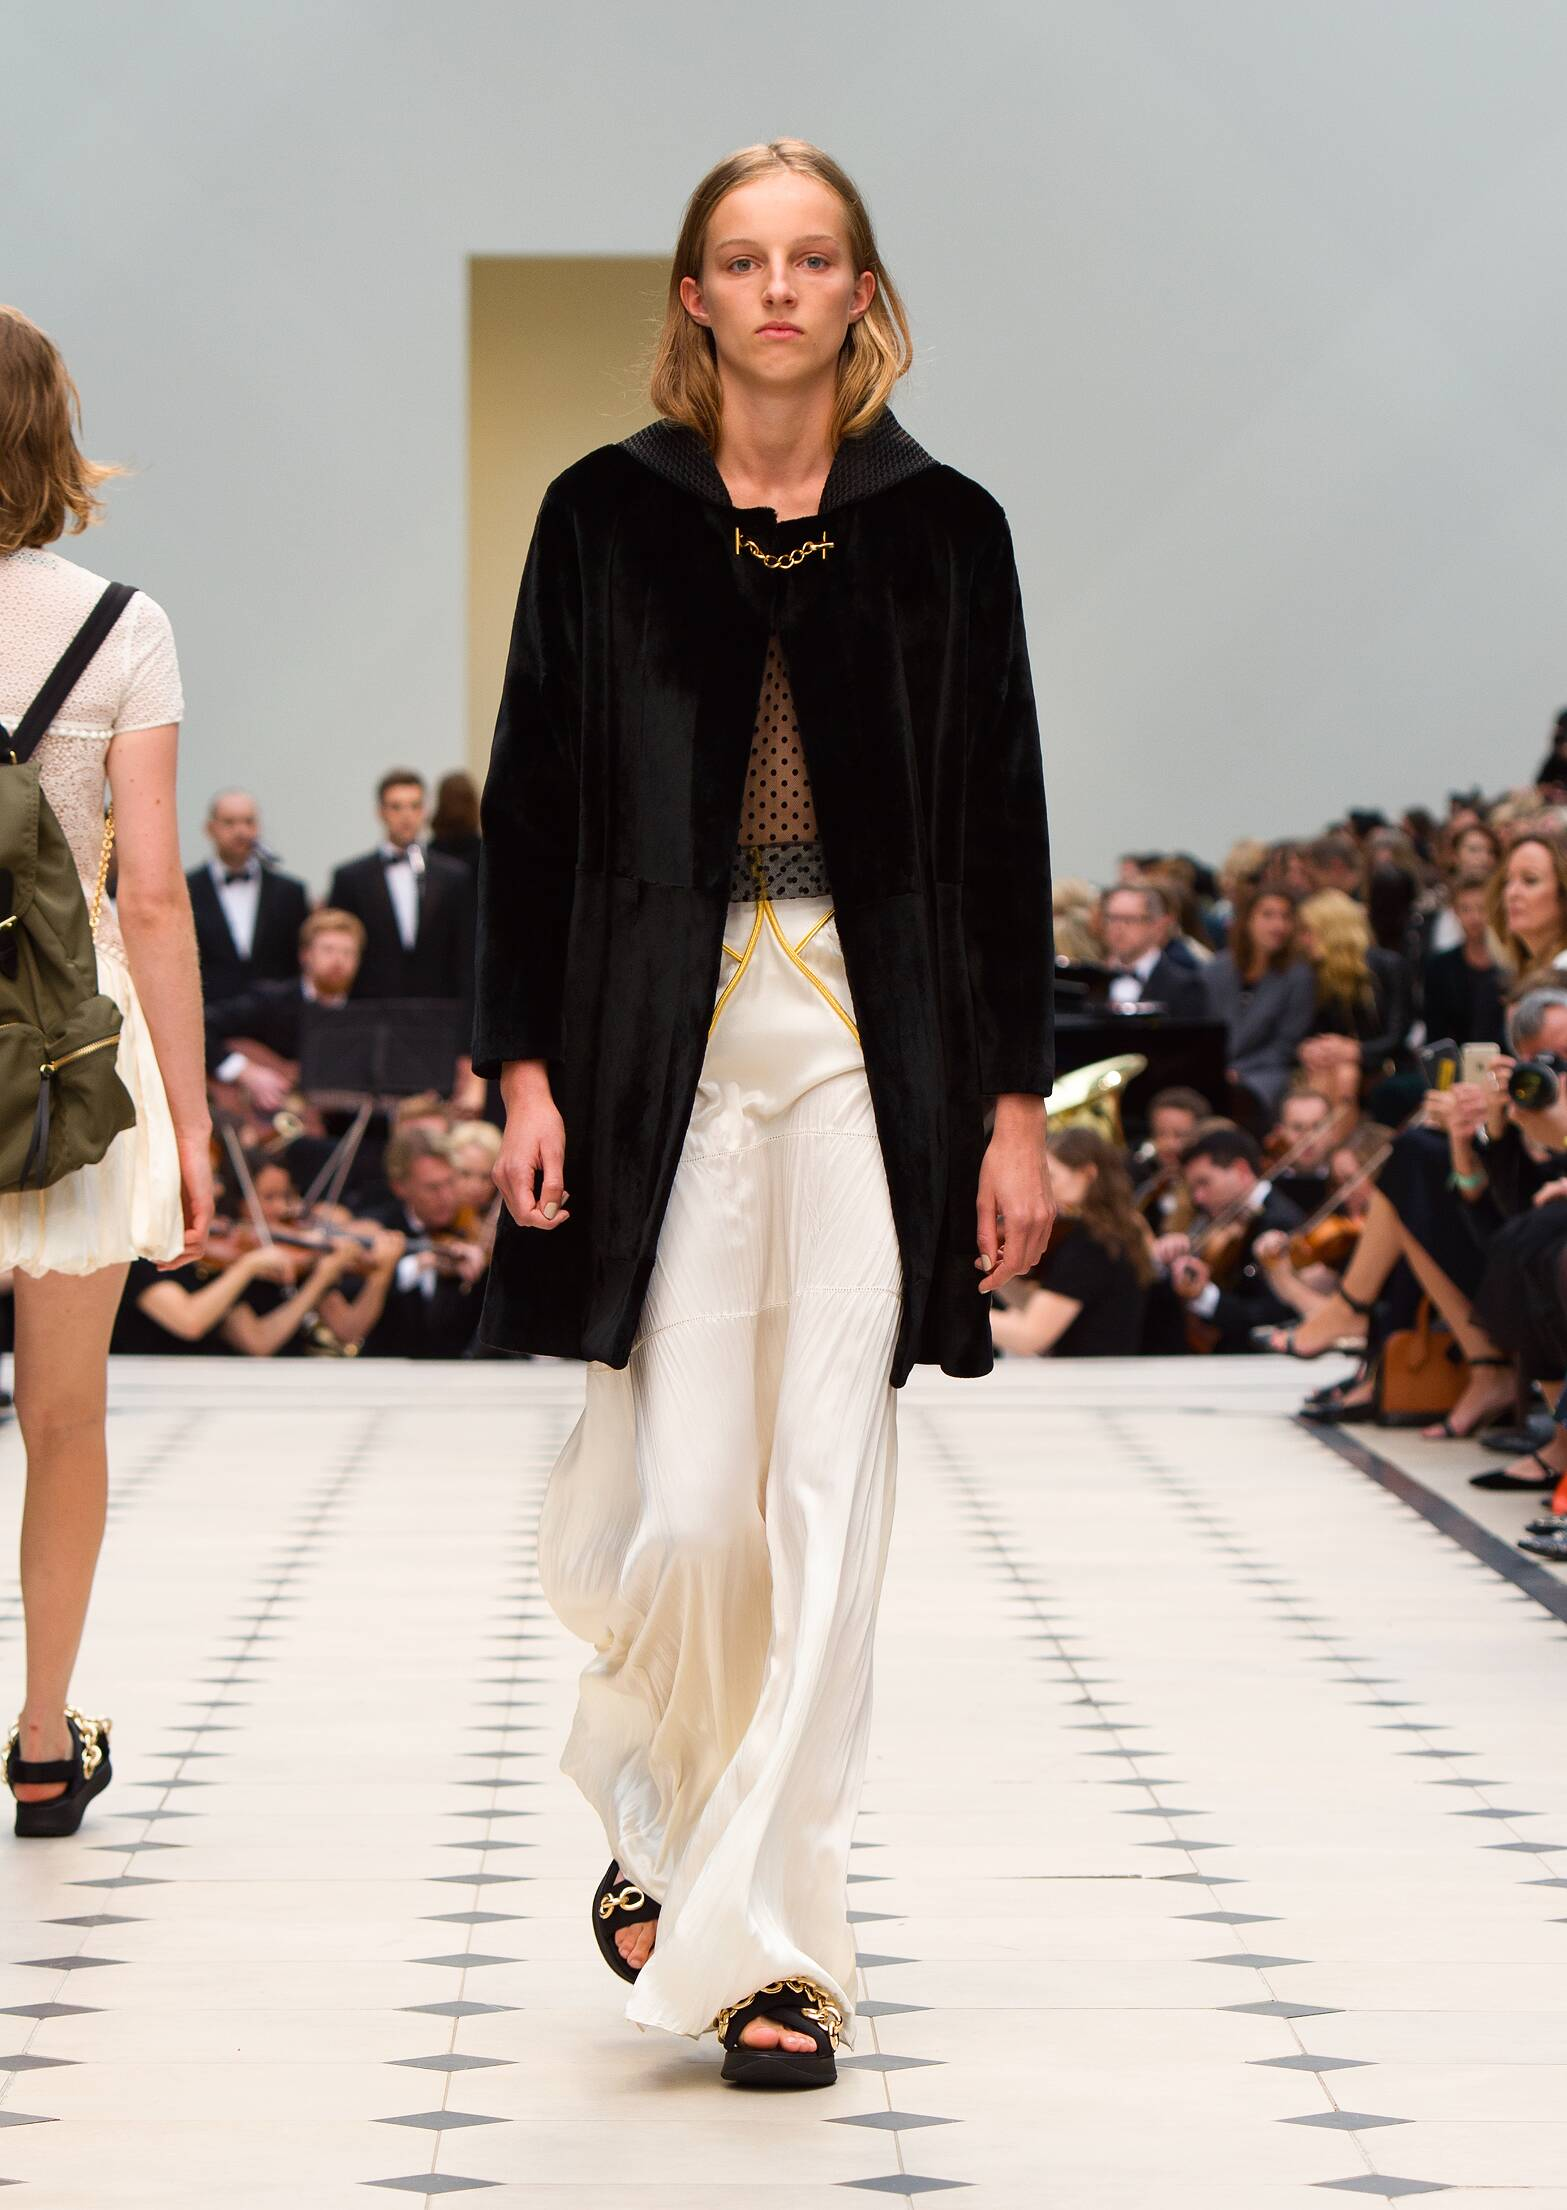 2016 Burberry Prorsum Summer Catwalk